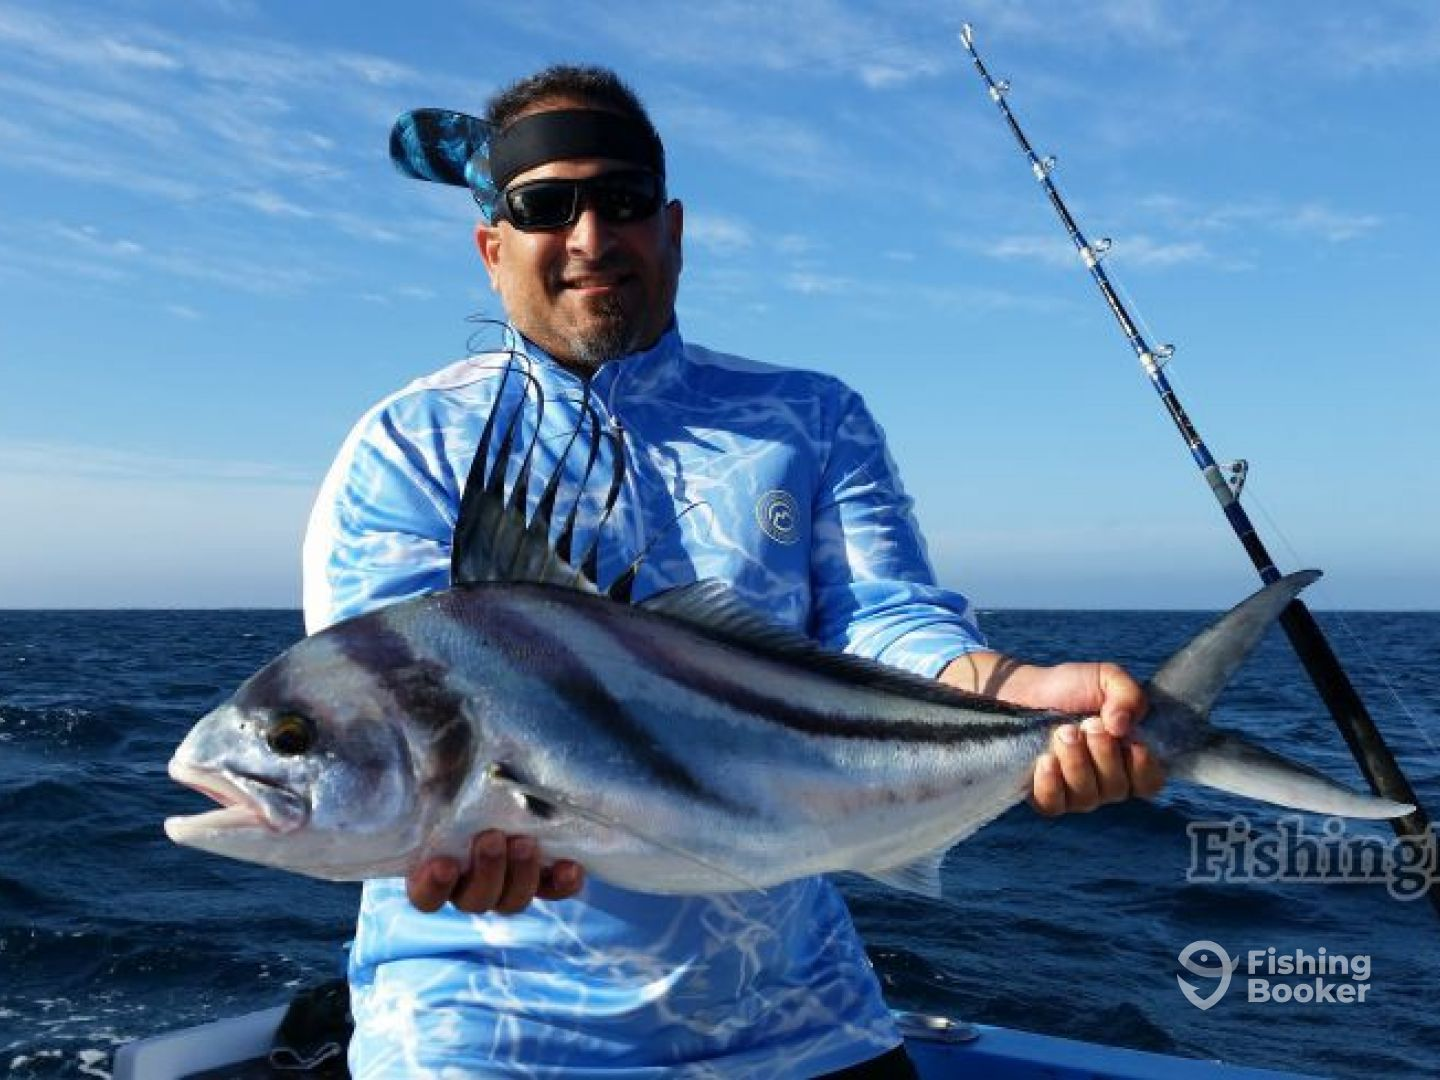 Sushi time sport fishing cabo san lucas mexico for Fishing cabo san lucas